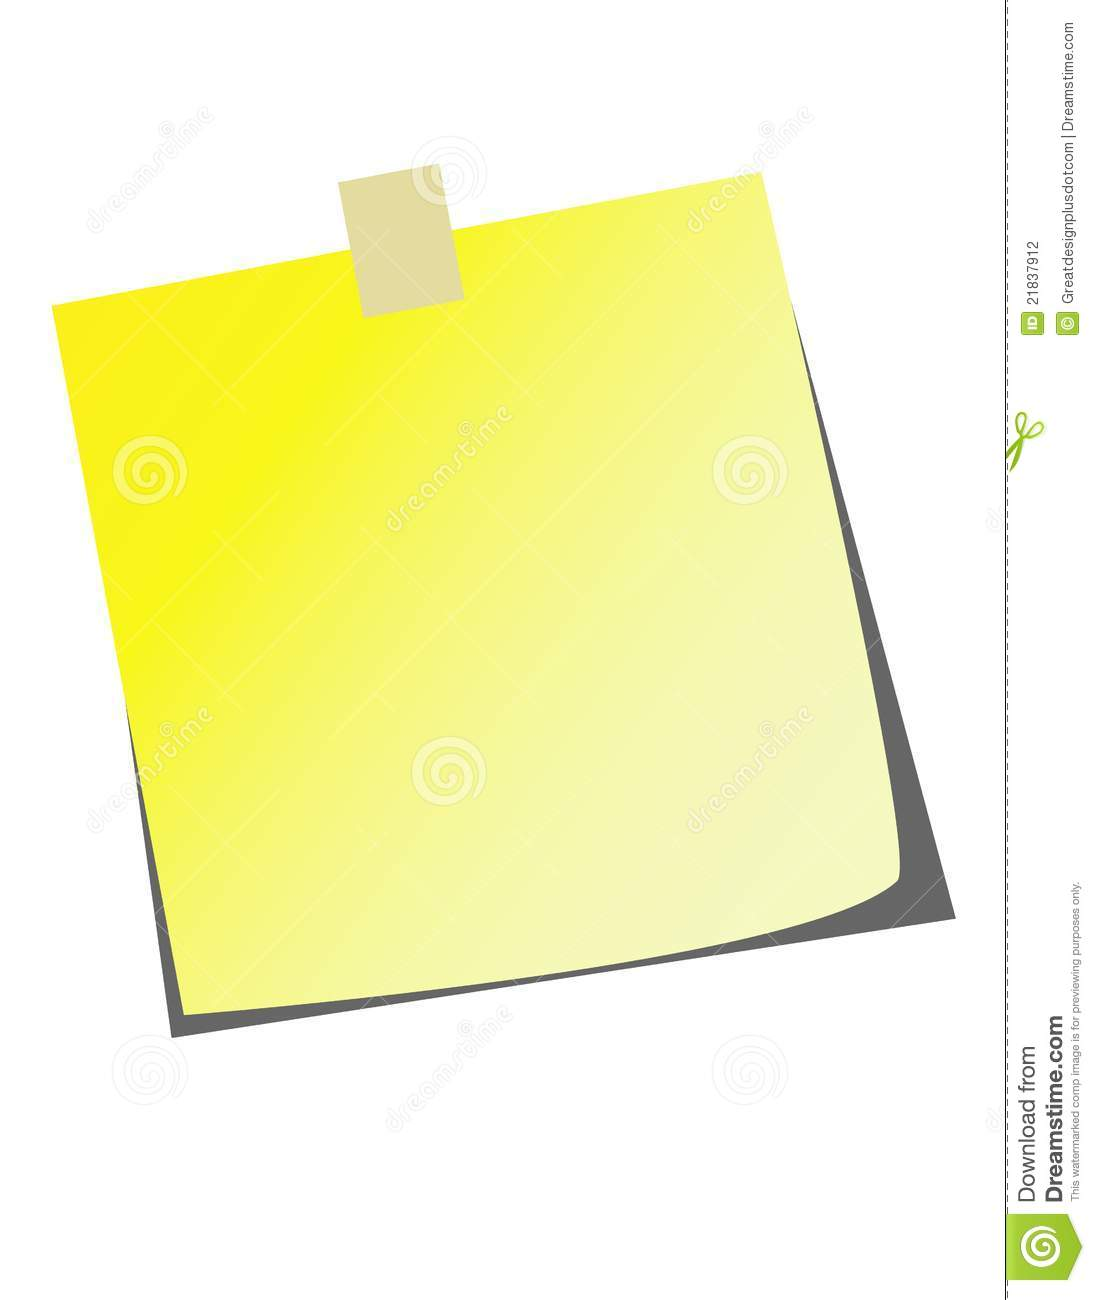 Free vector graphic sticky note note info paper free image on - Royalty Free Stock Photo Art Clip Note Realistic Sticky Vector